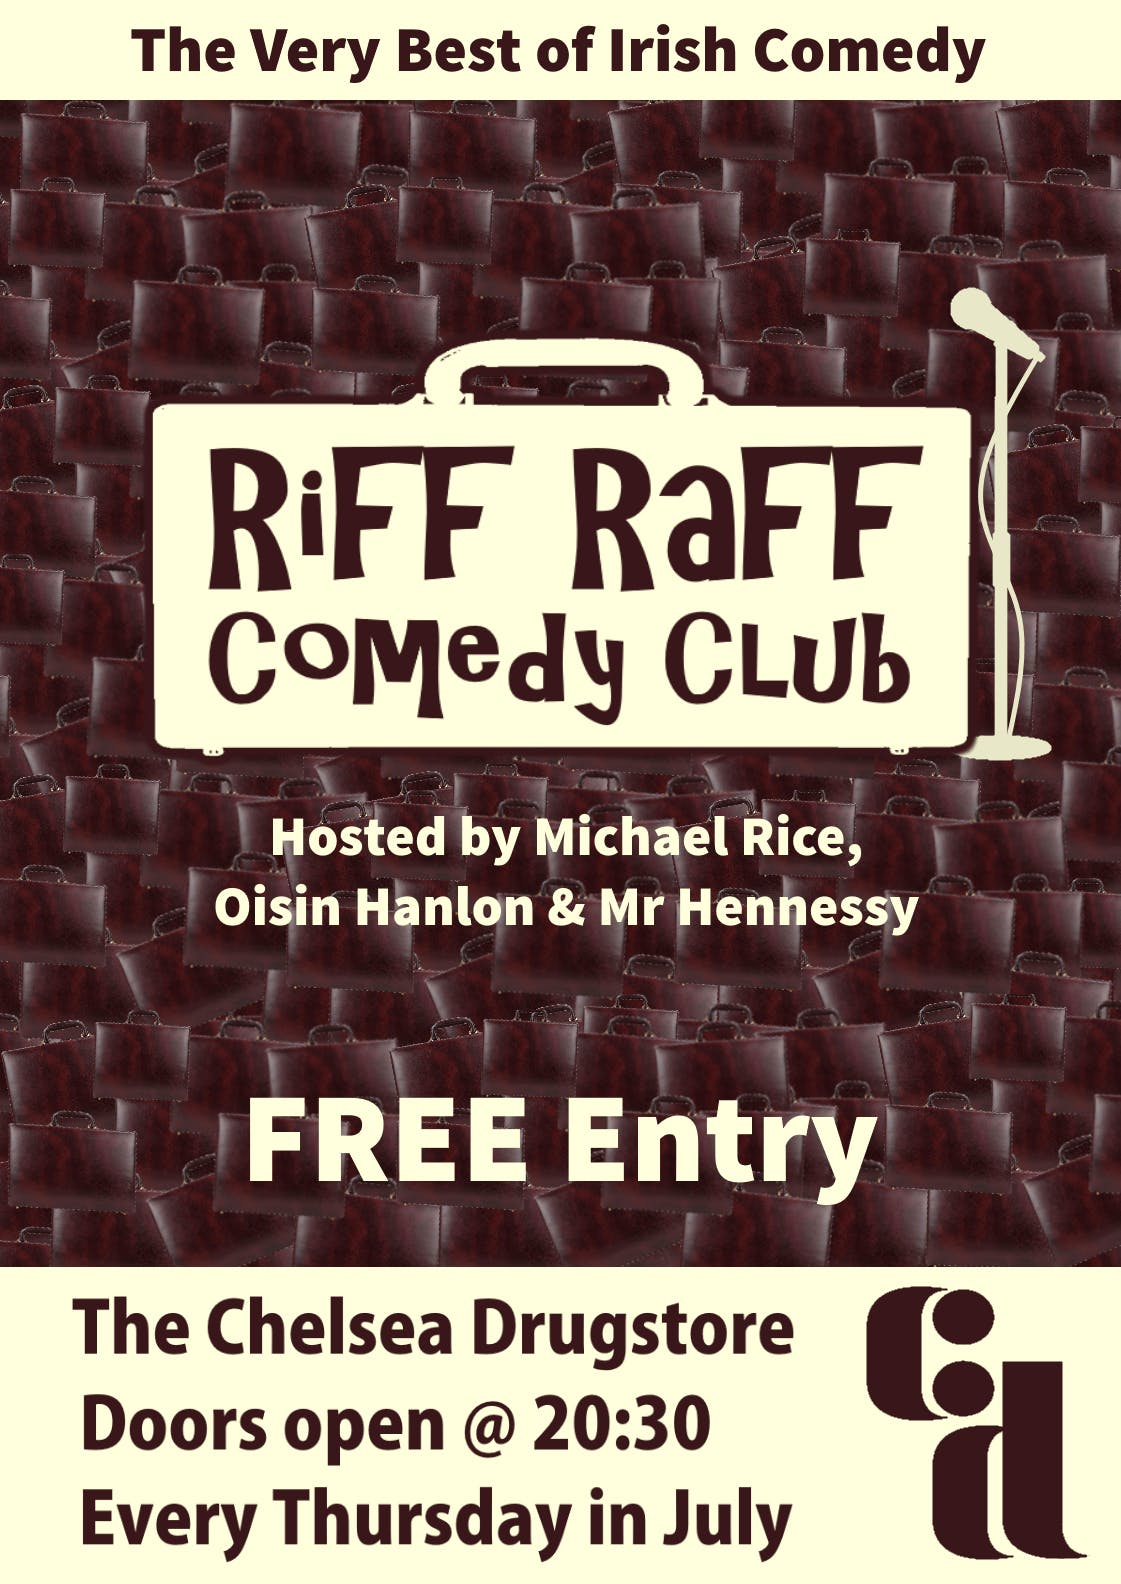 Riff-Raff Comedy July in The Drugstore SECOND SHOW